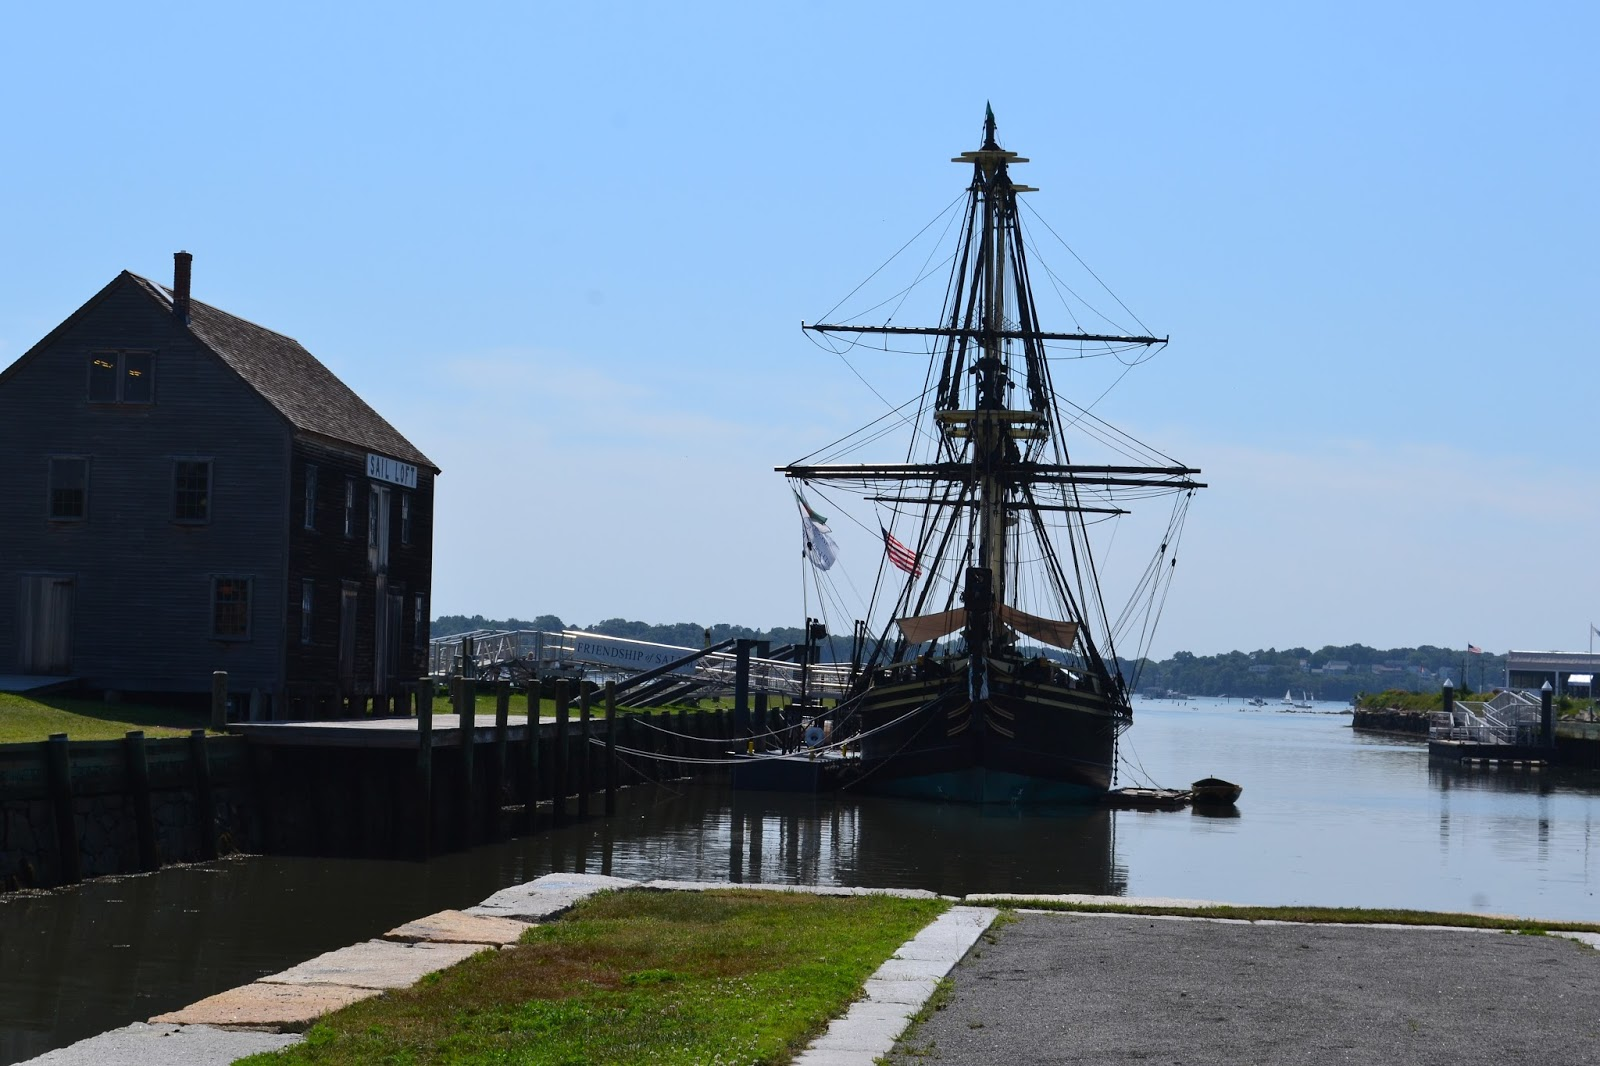 Salem, massachusetts, nouvelle angleterre, usa